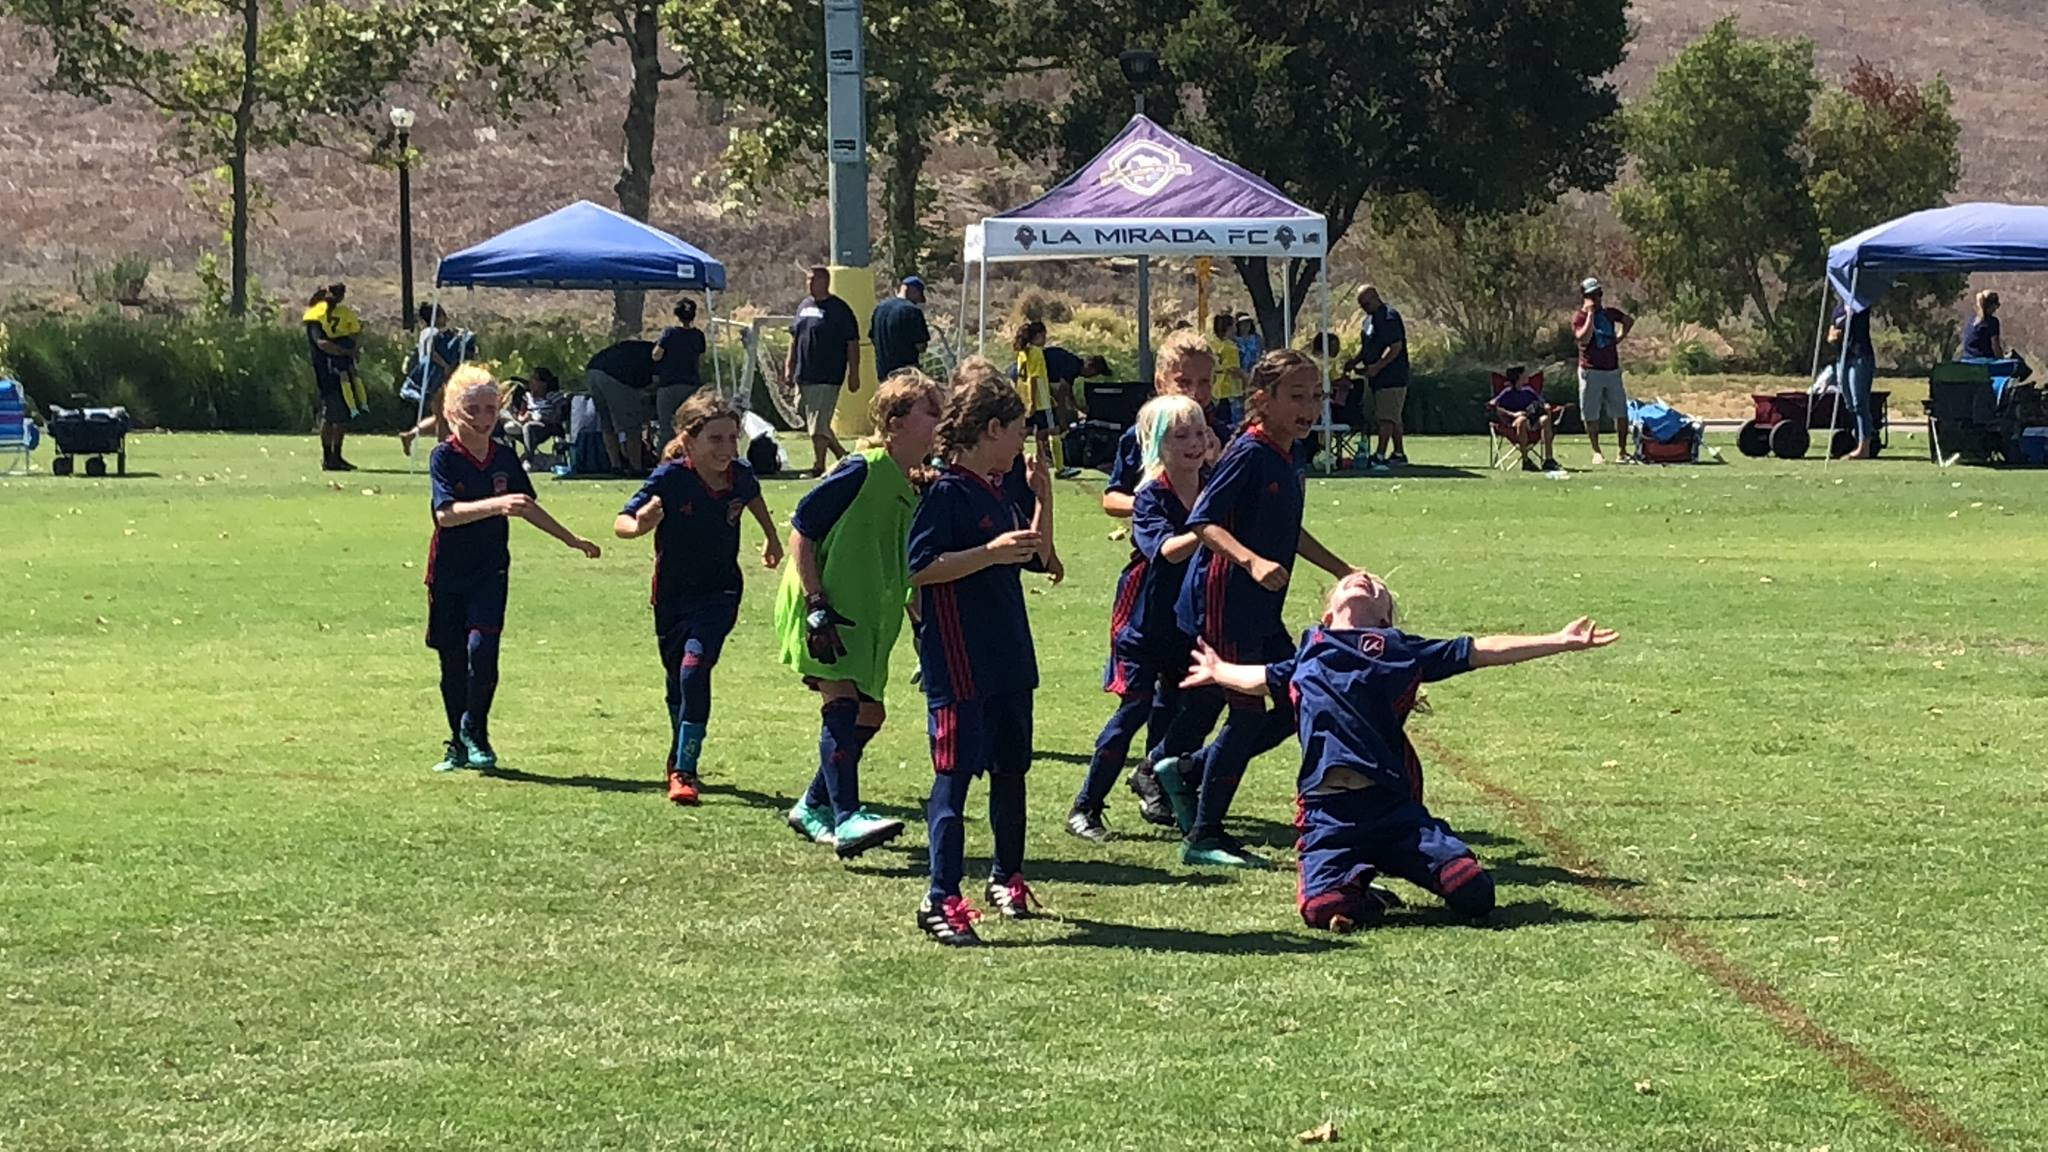 LA Breakers G2010 celebrate a win in PKs in the OC Kick-off Classic